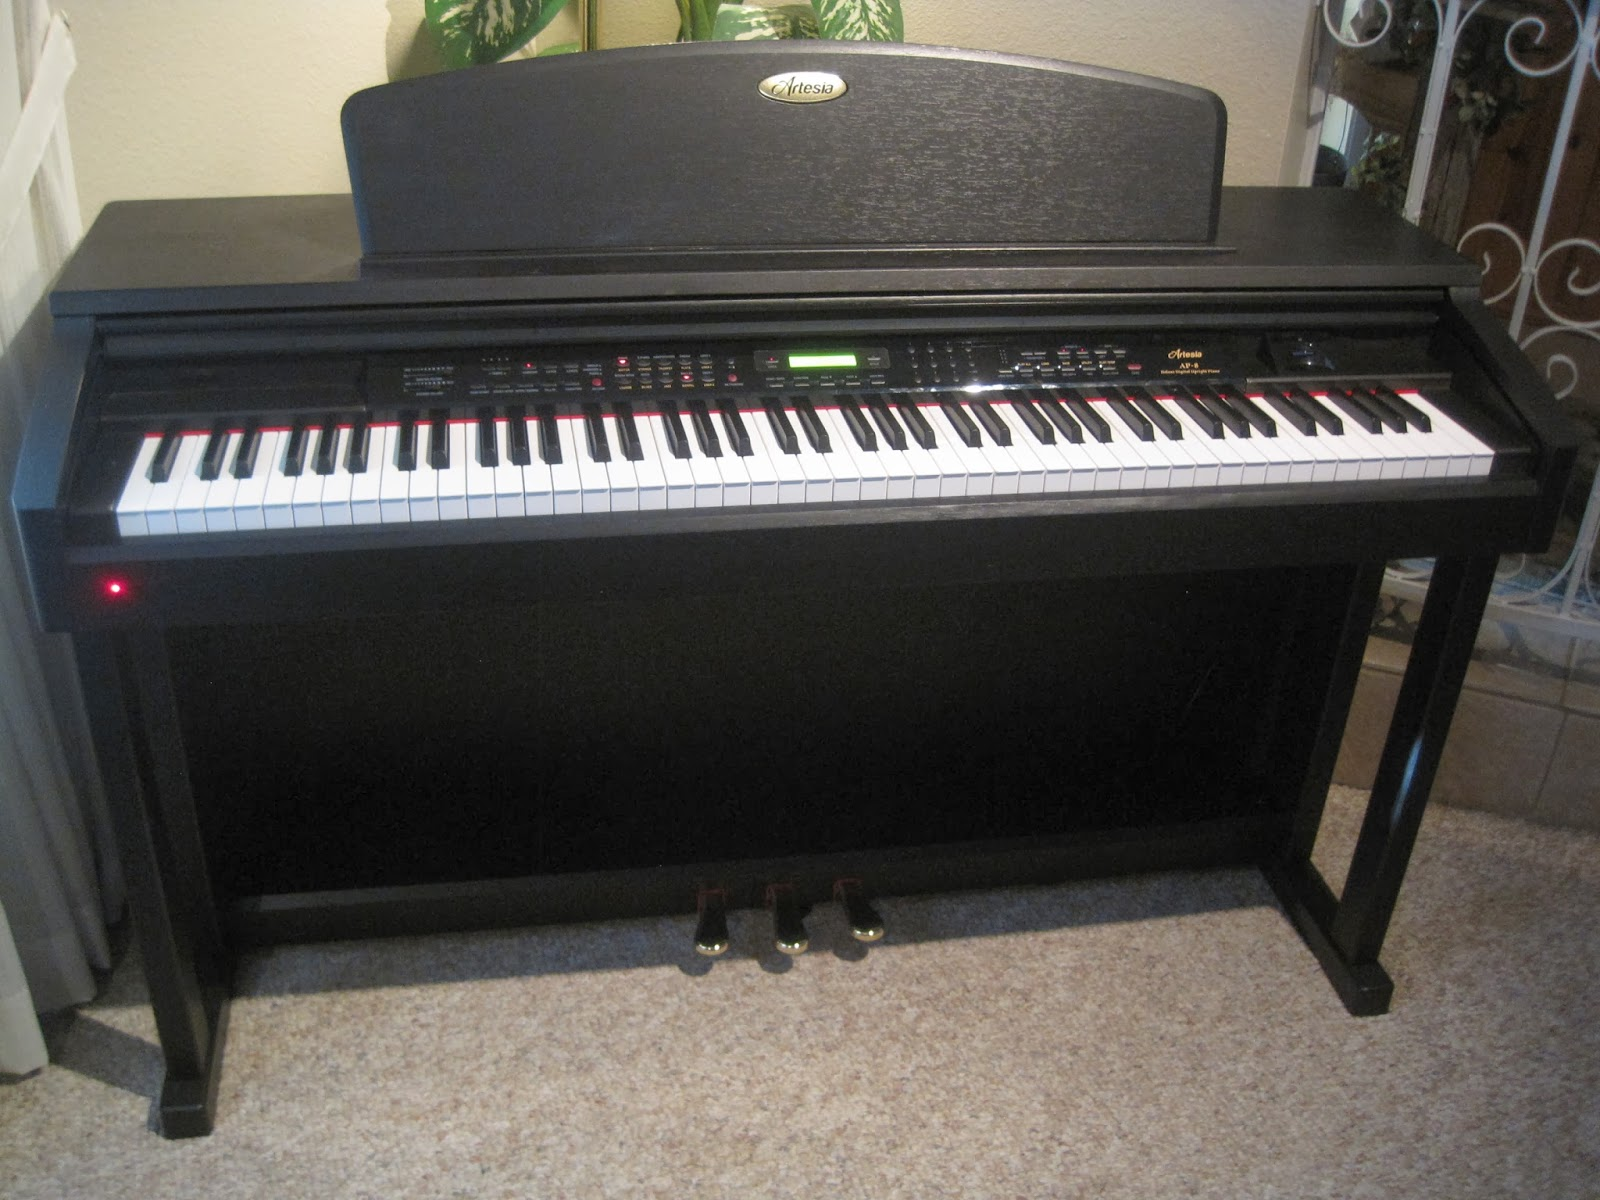 az piano reviews review digital pianos under 1000 go here. Black Bedroom Furniture Sets. Home Design Ideas